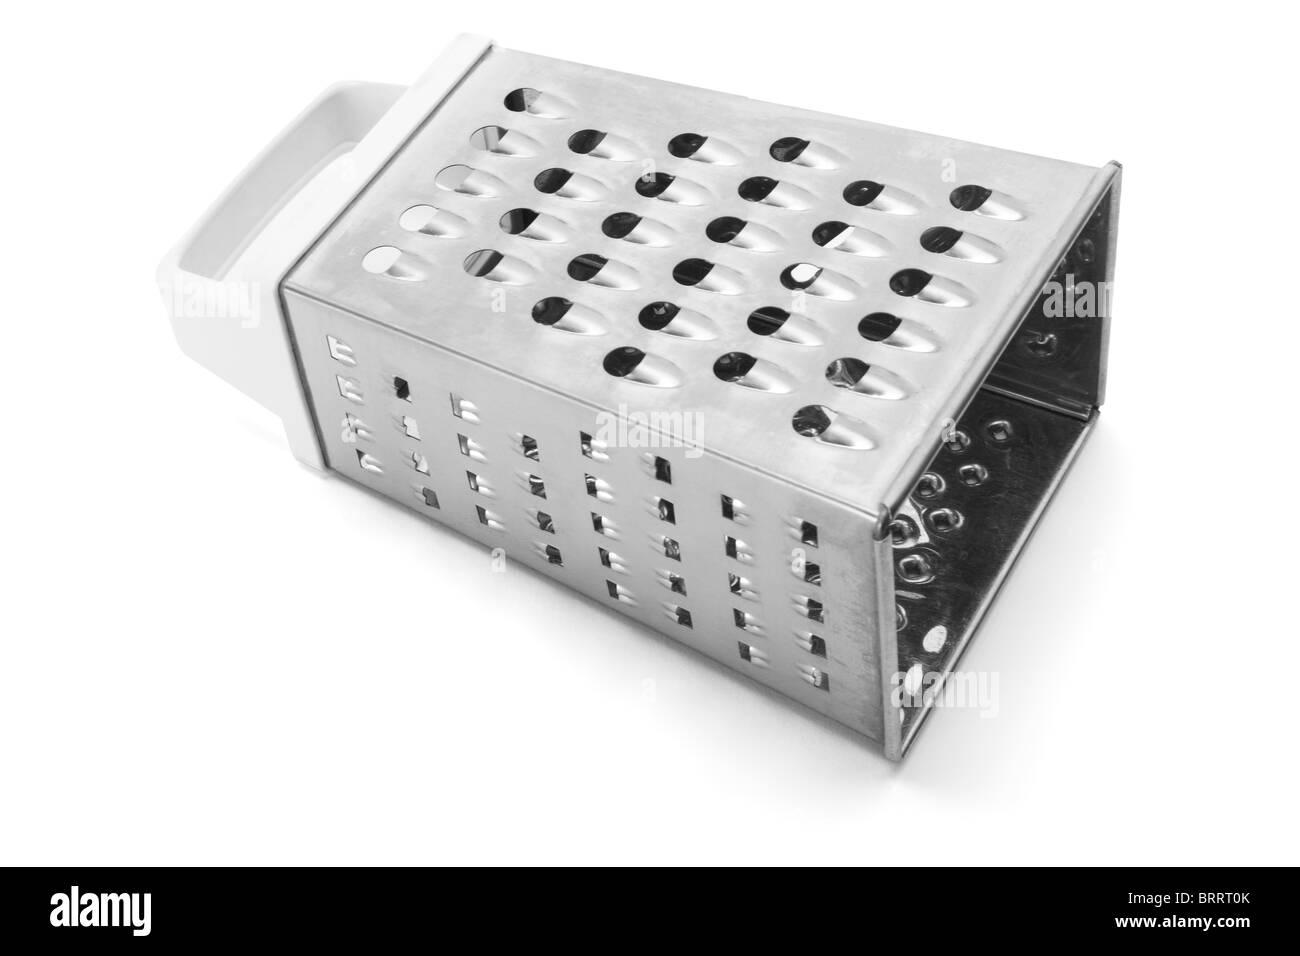 Grater - Stock Image